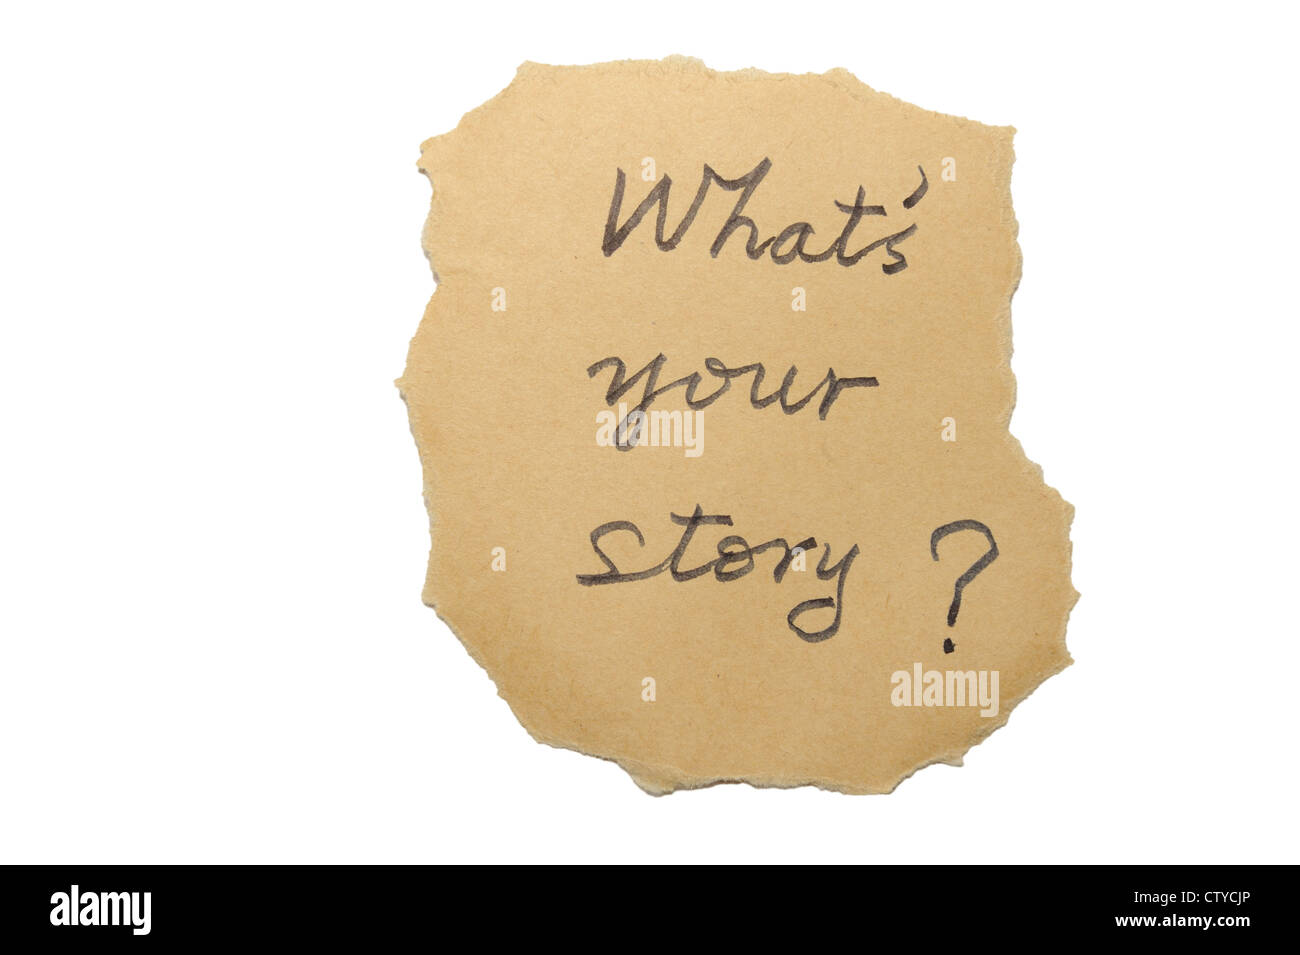 What's your story words written on an old paper - Stock Image